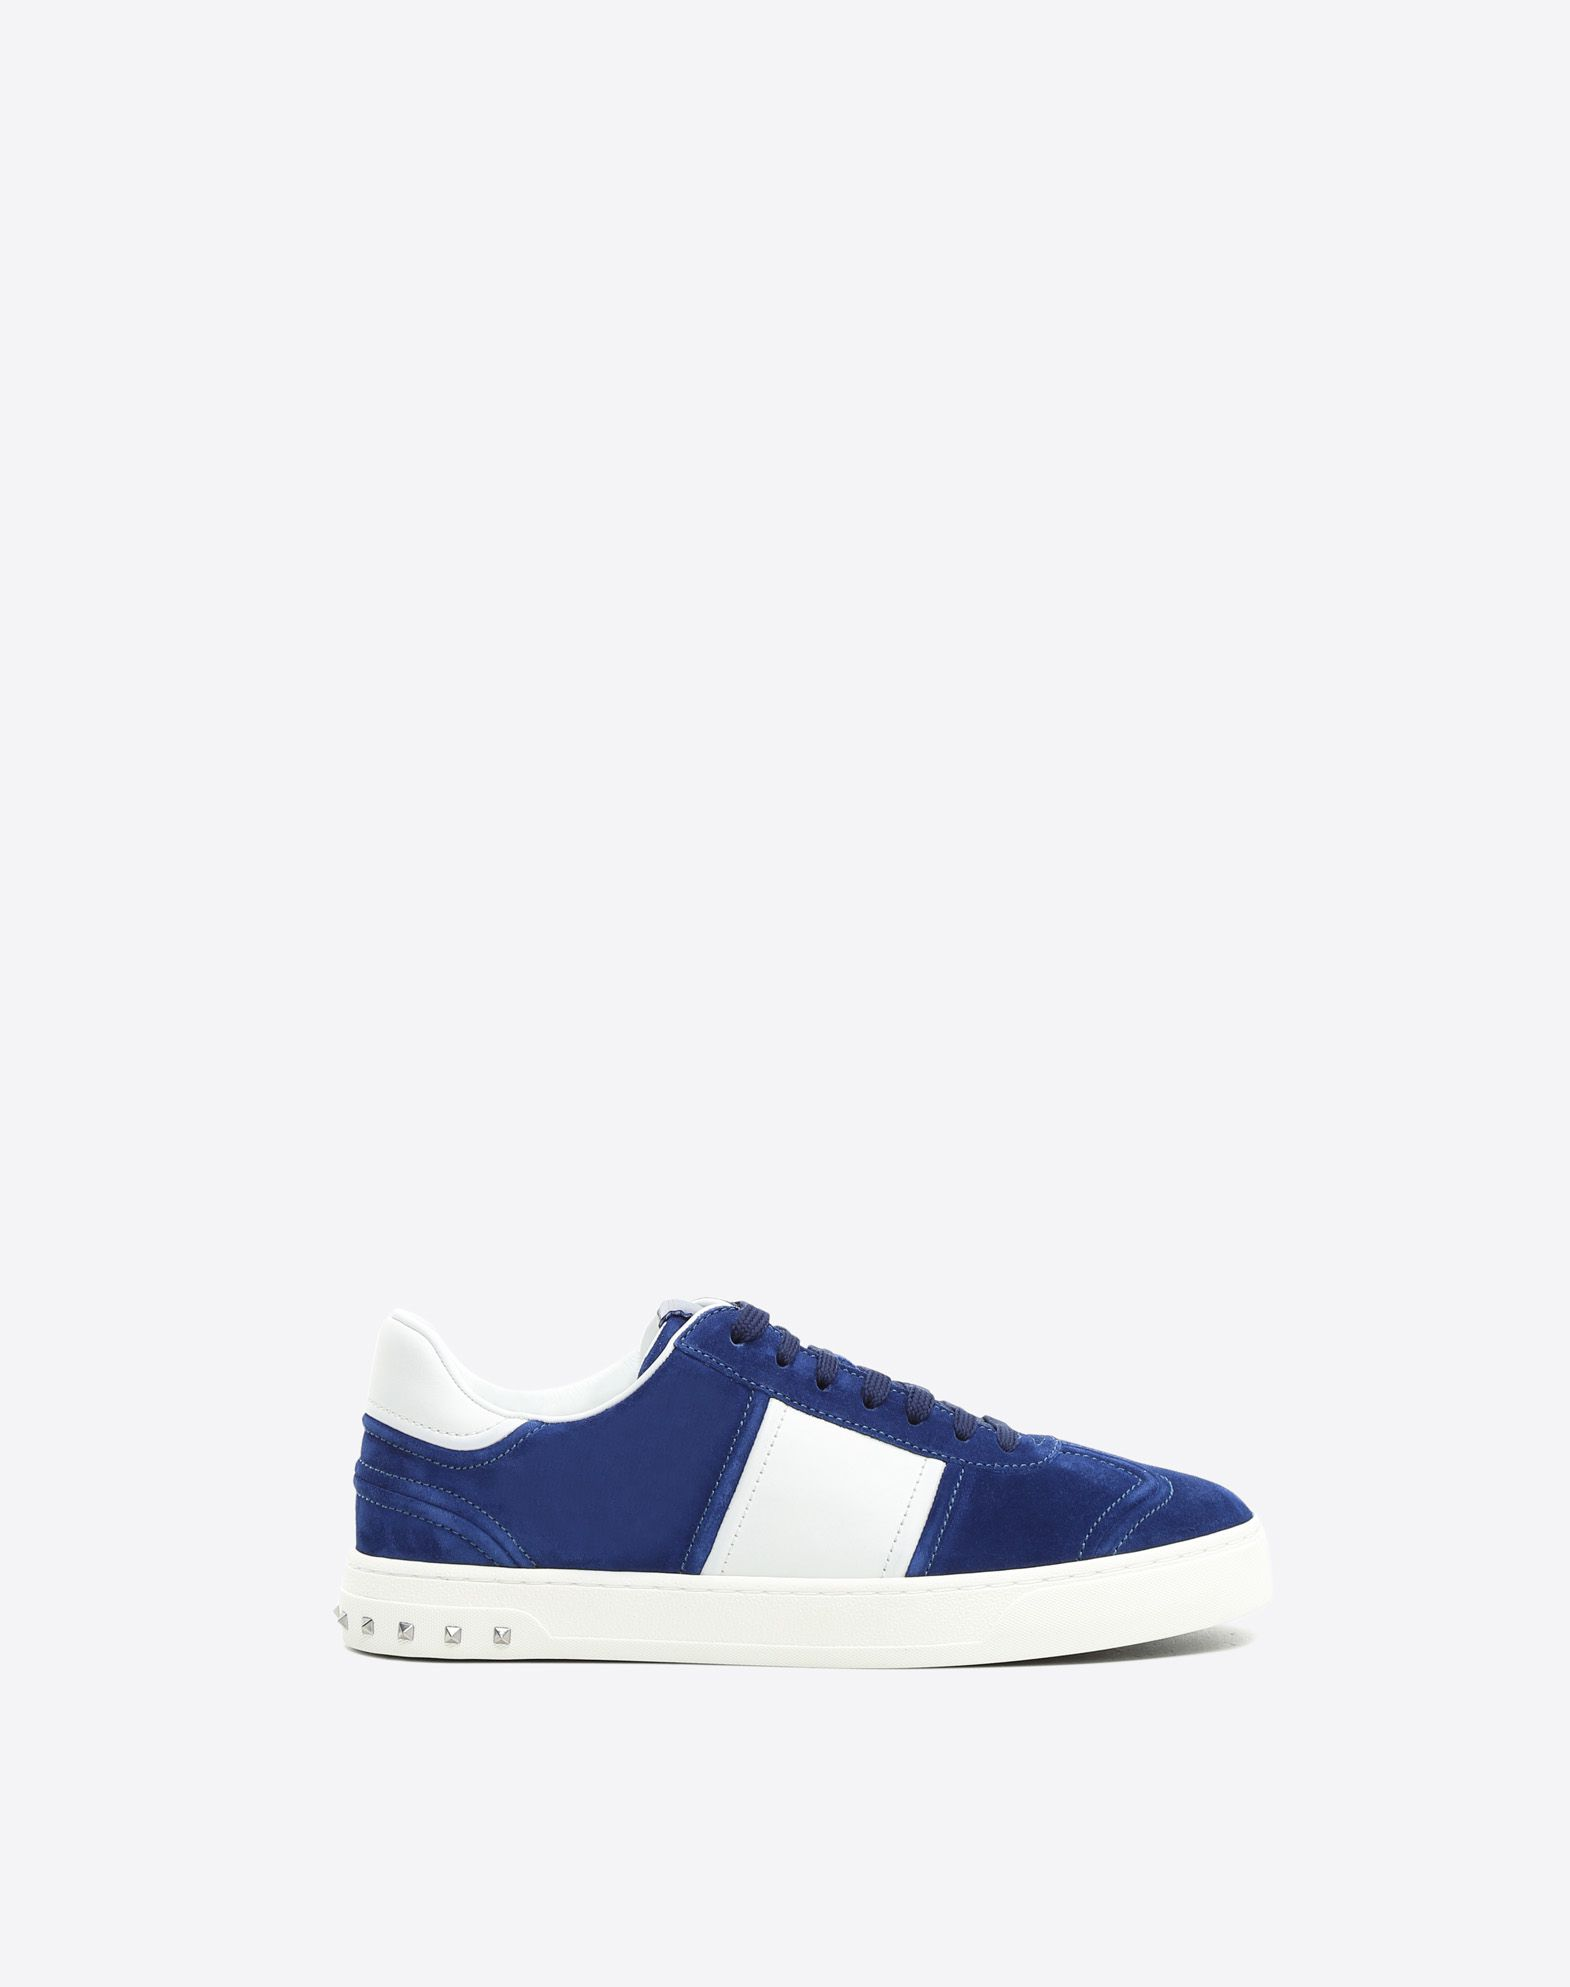 VALENTINO GARAVANI UOMO Sneakers Flycrew LOW-TOP SNEAKERS U f